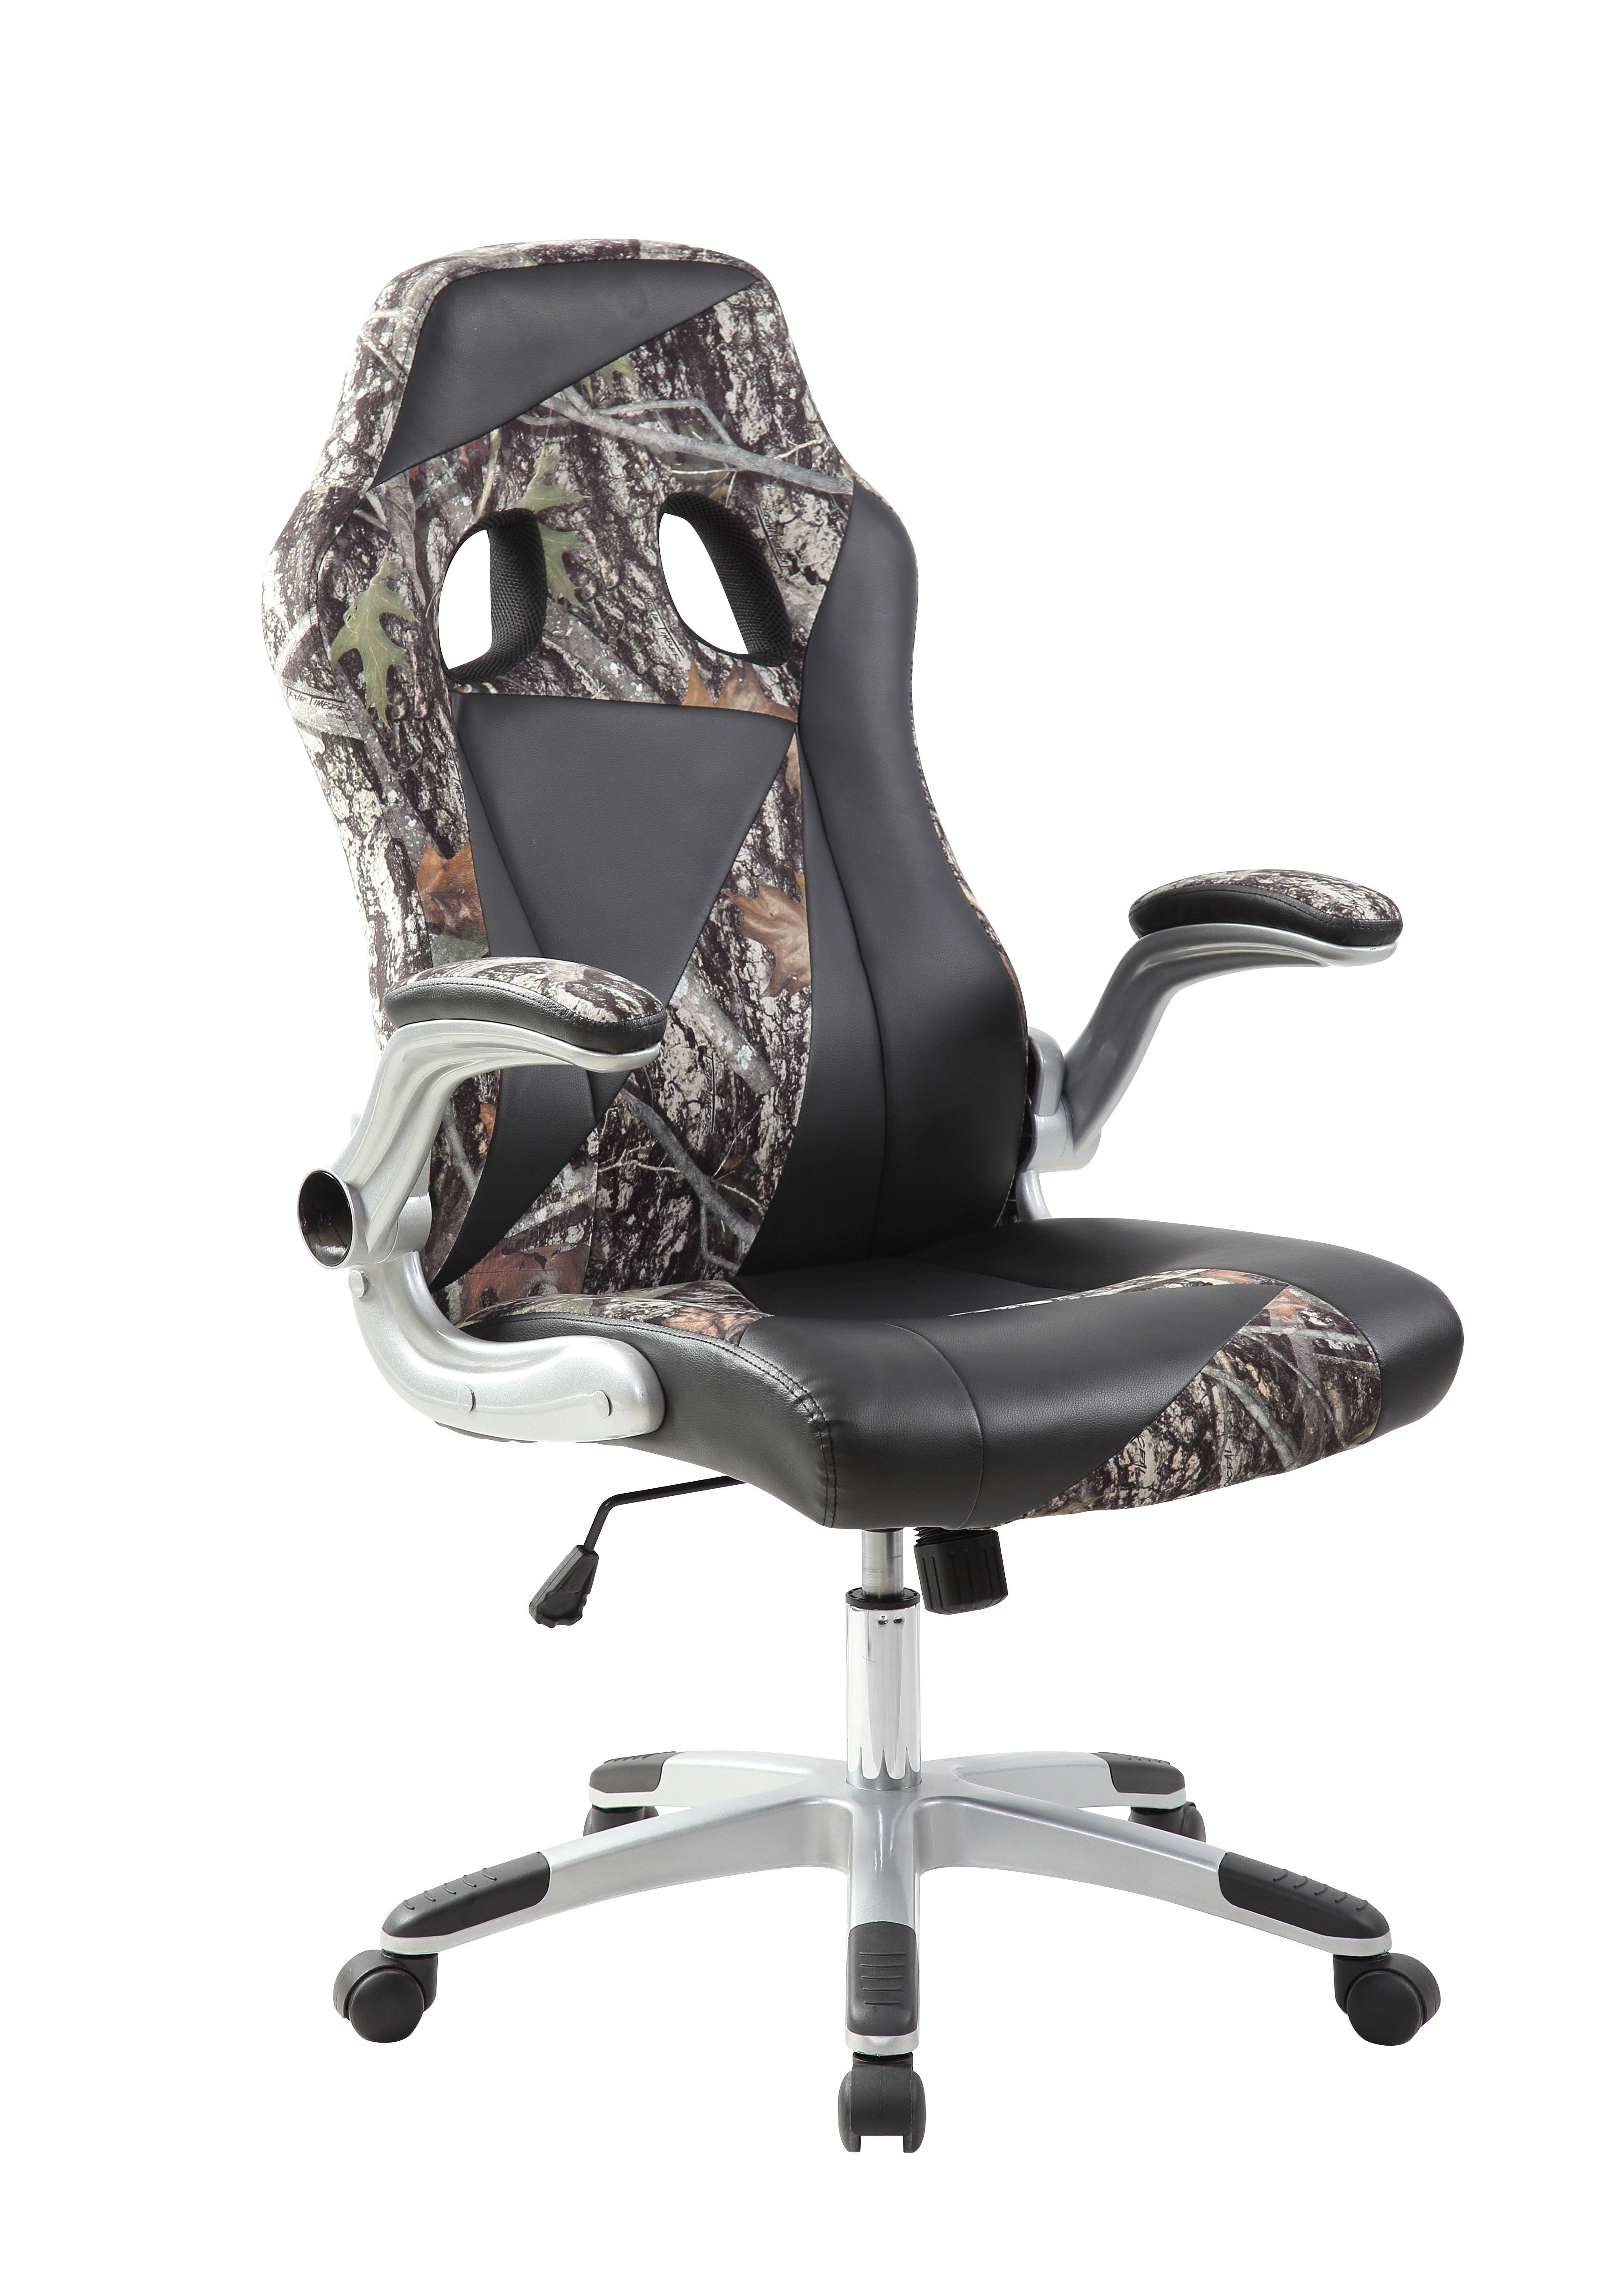 fishing chair for bad back big joe chairs bed bath and beyond don 39t like the color but this is comfy two tone